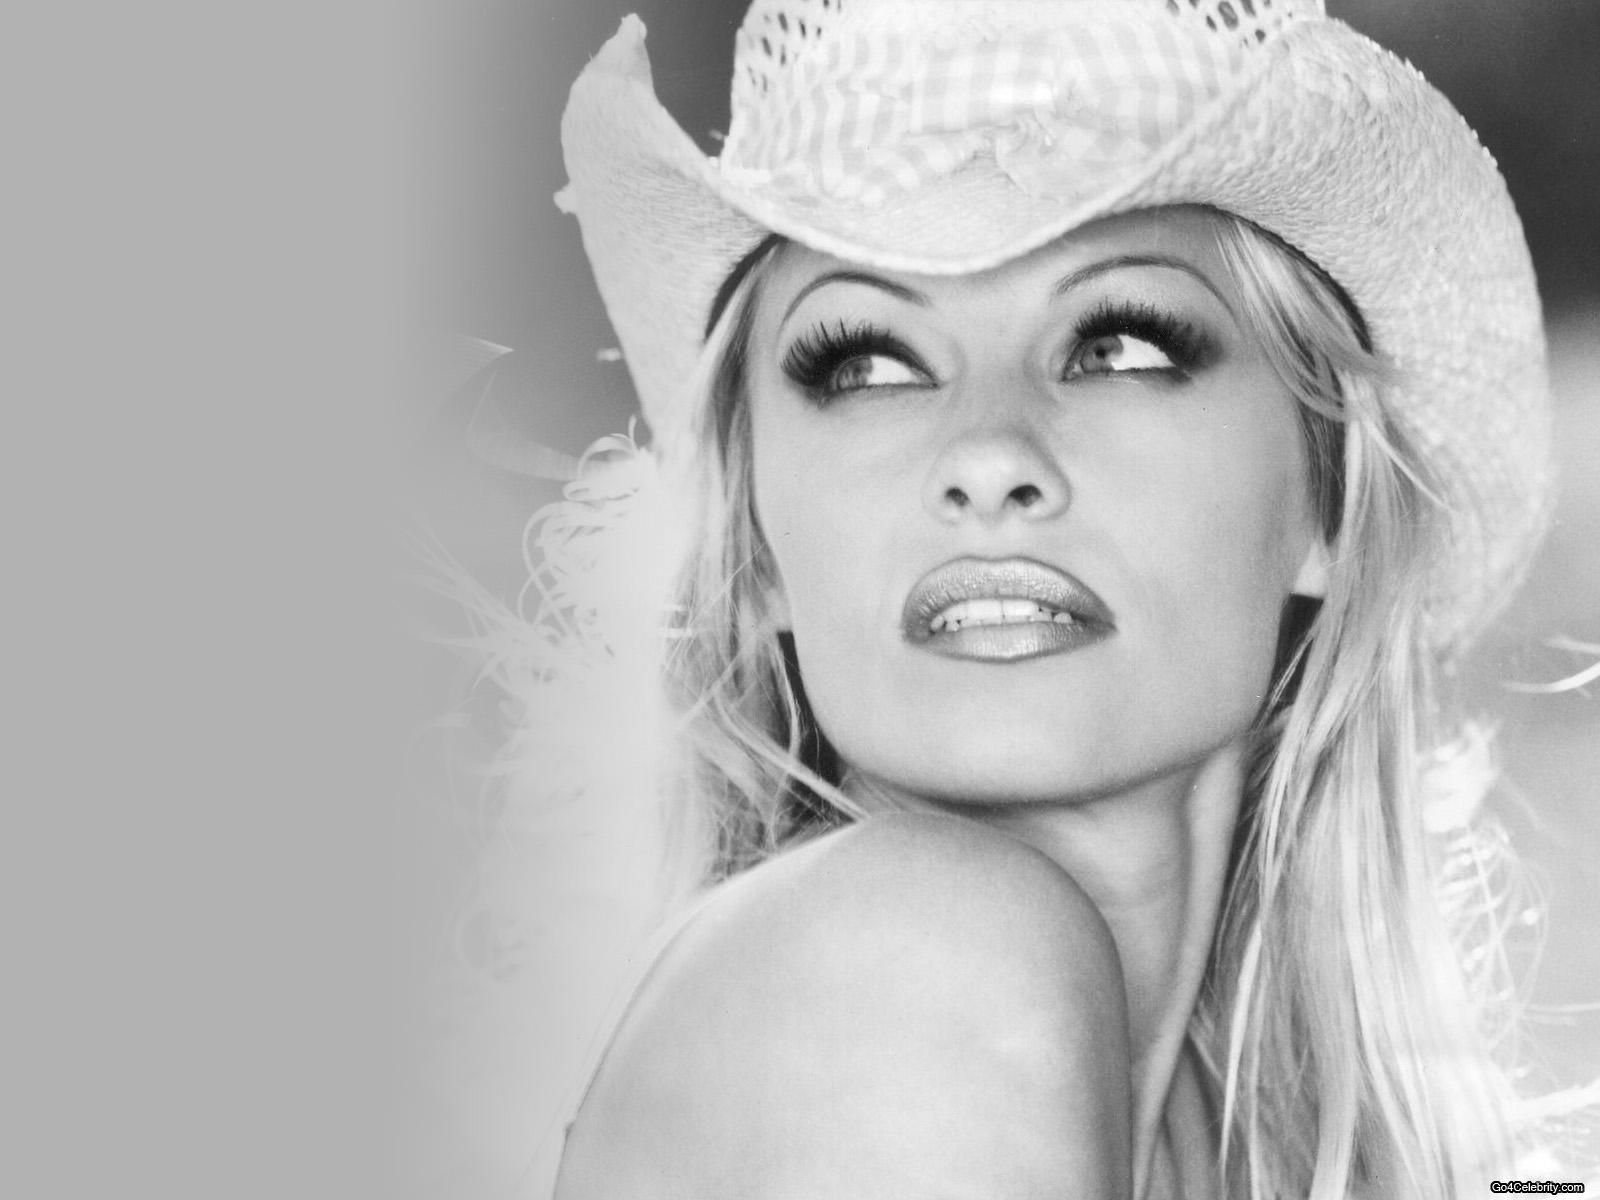 Pamela Anderson undressed in honor of recovering from hepatitis